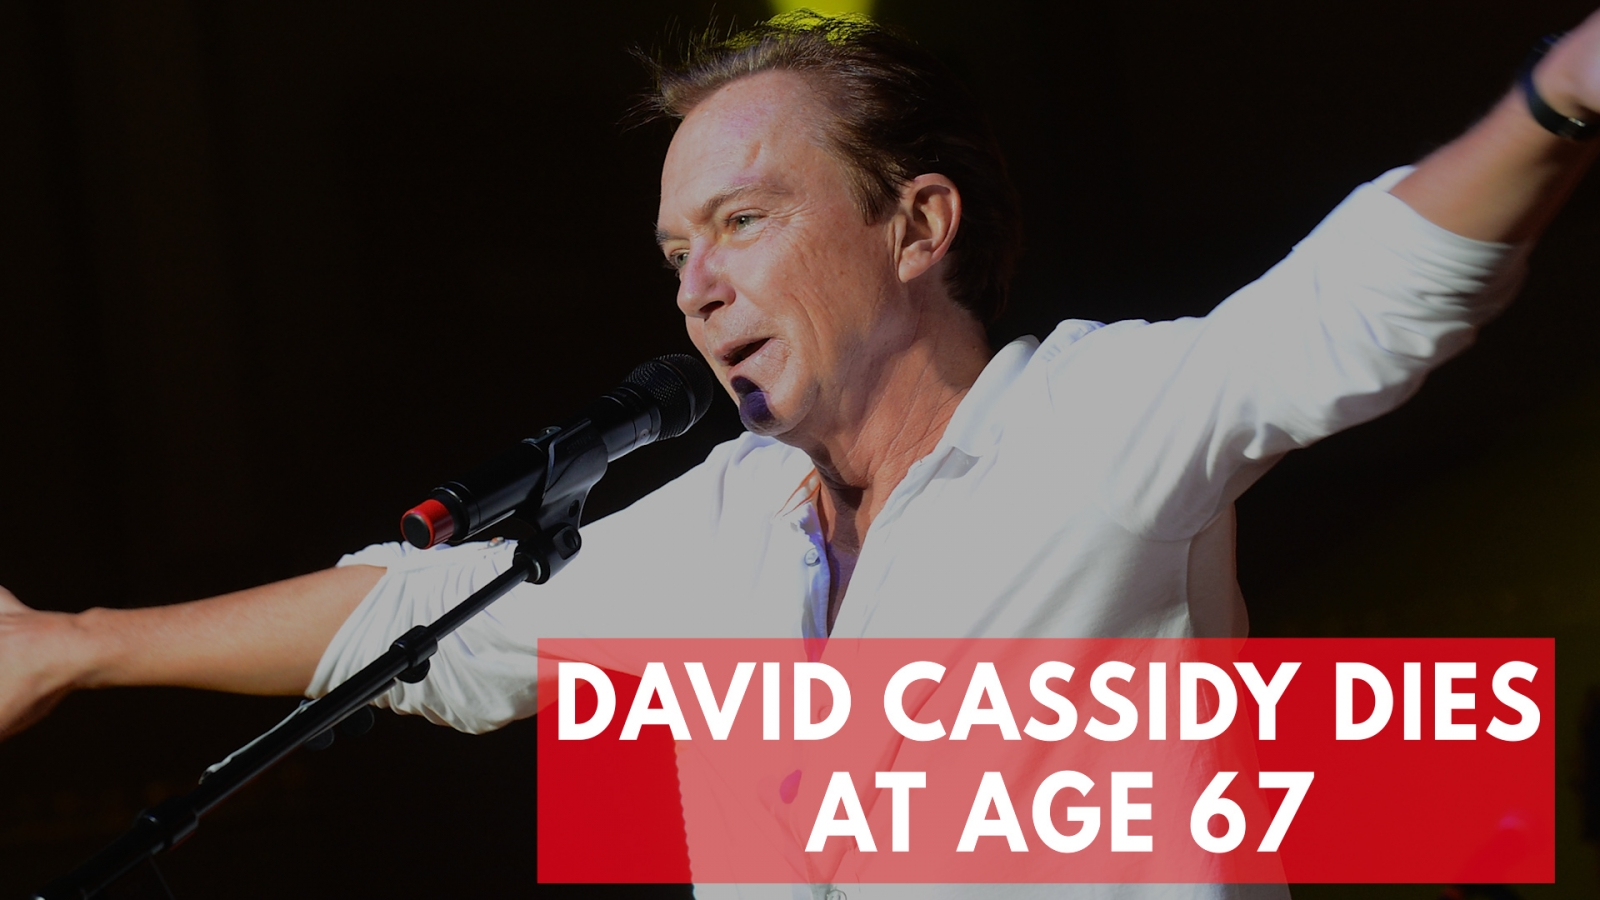 David Cassidy, 1970s teen heartthrob, dies at age 67